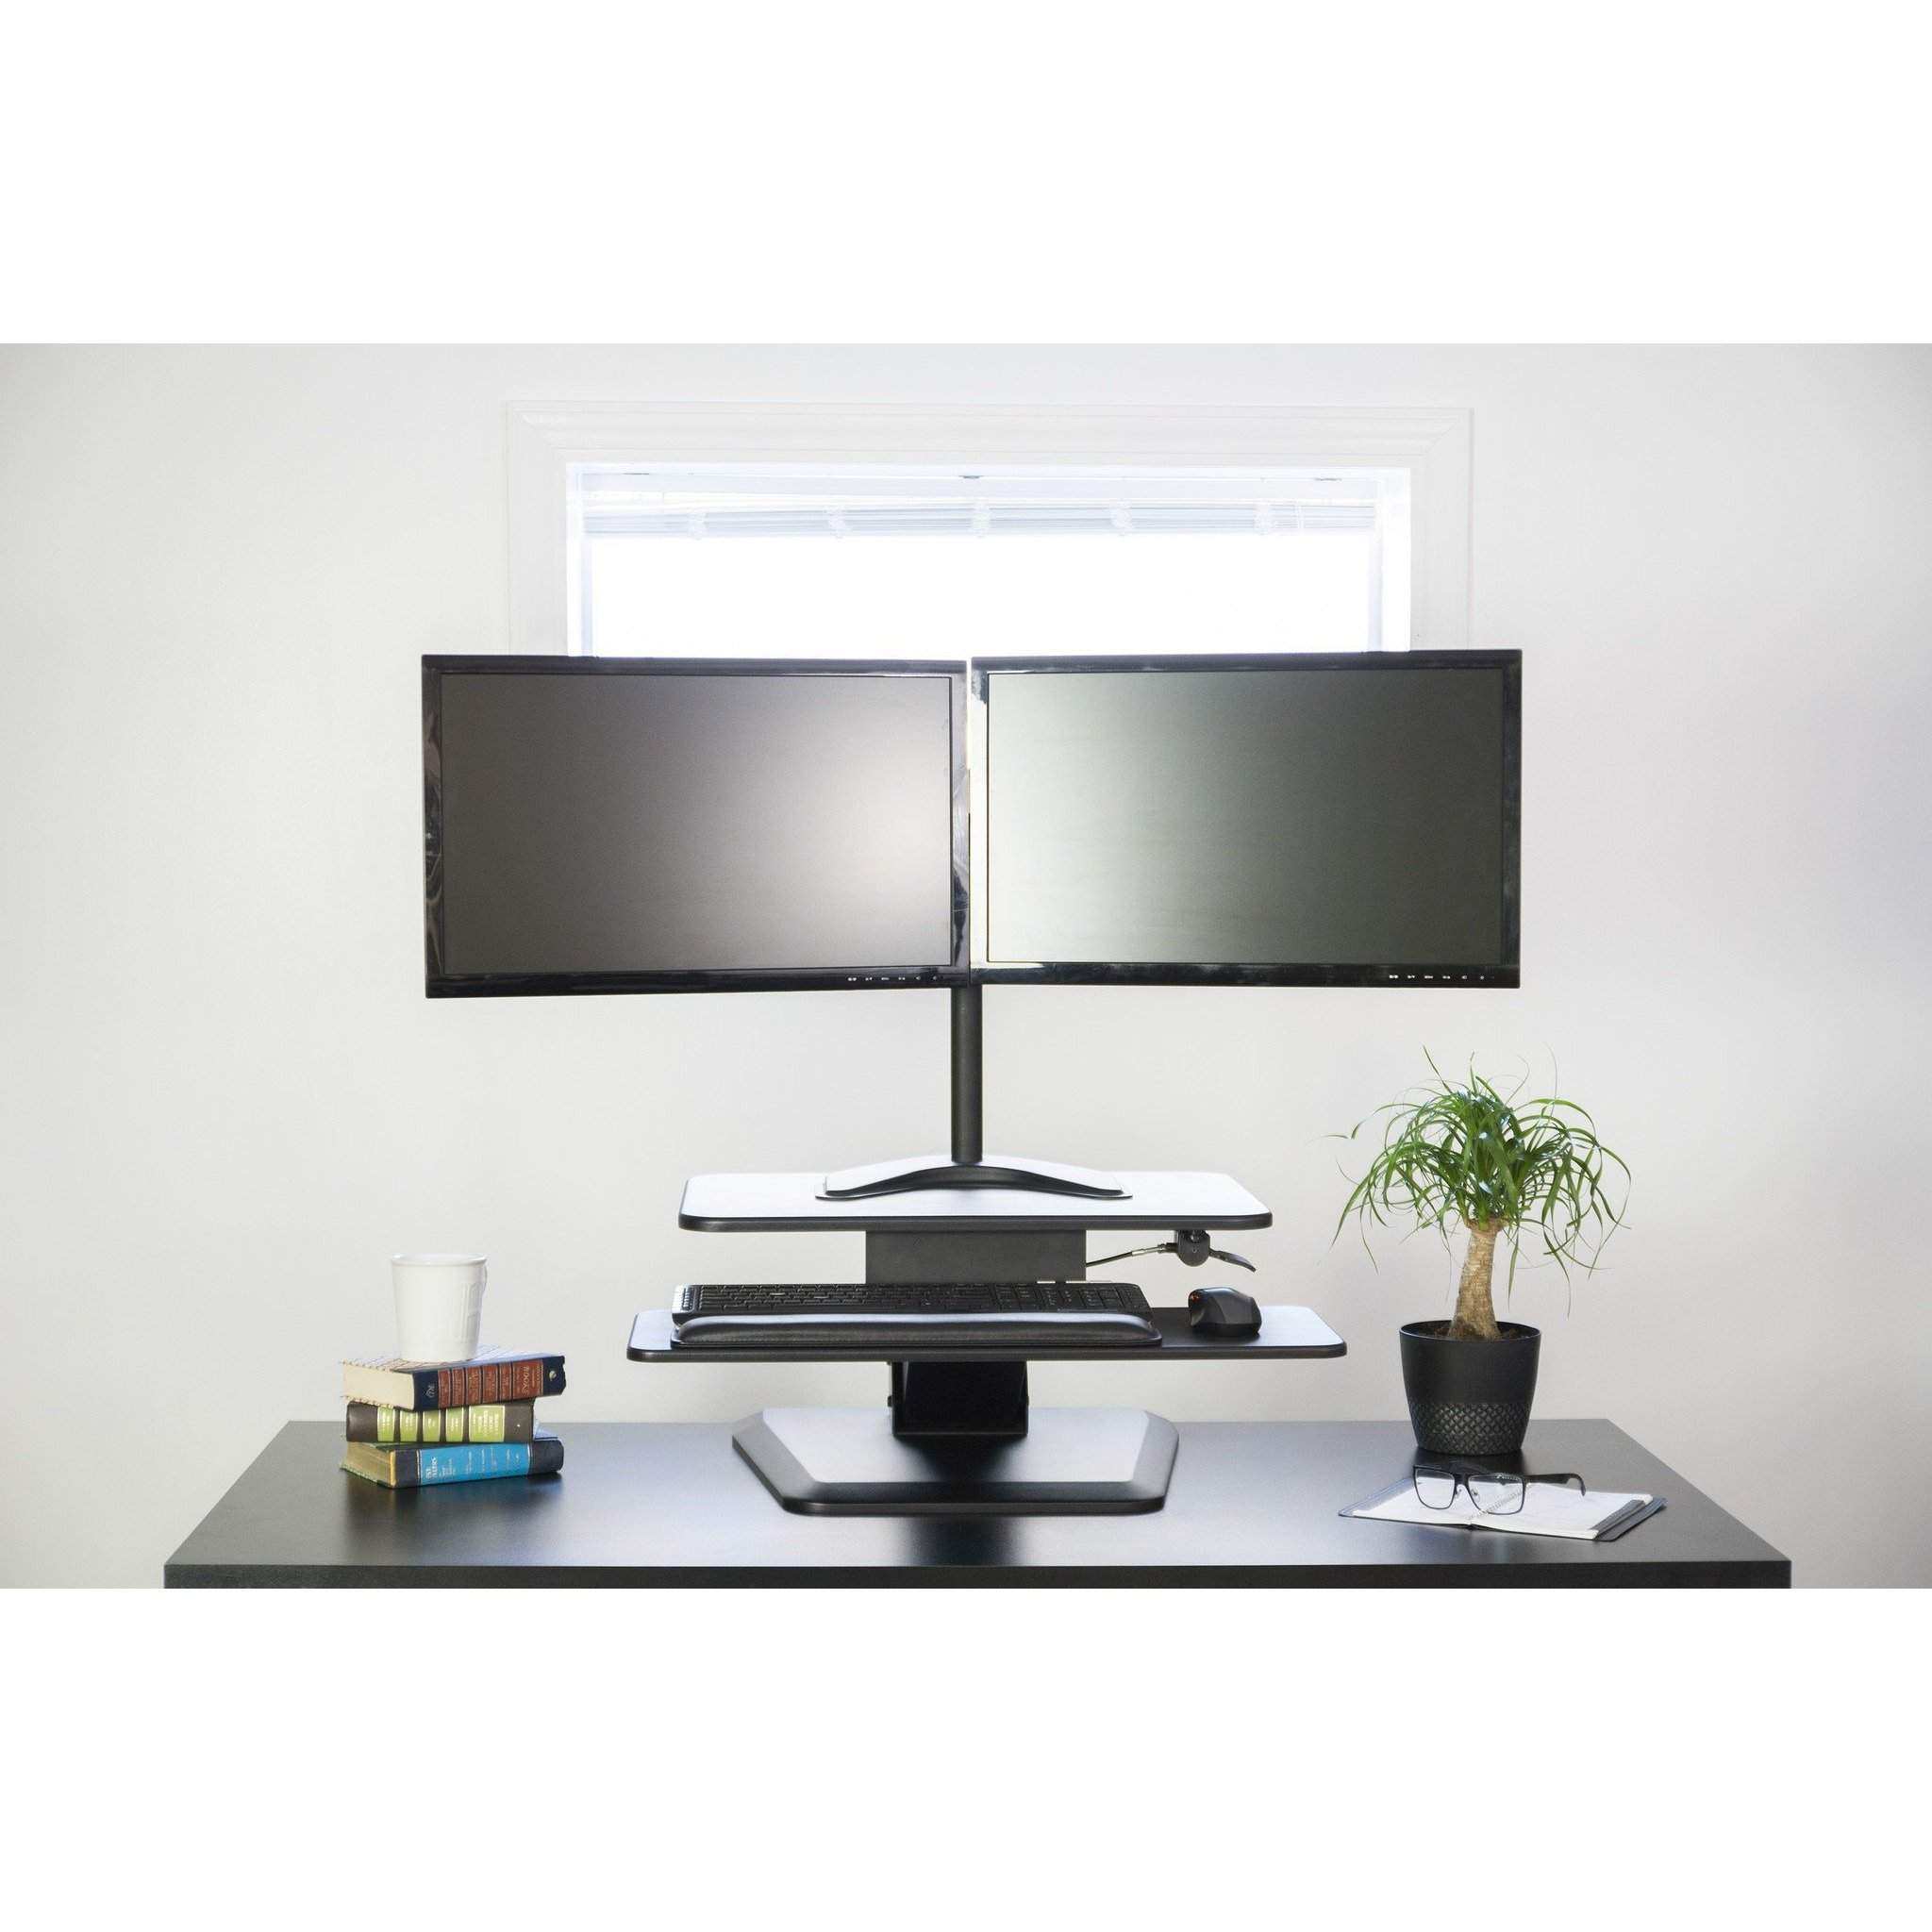 p out grey gry tray techni rta pull computer workstation desk with desks keyboard mobili